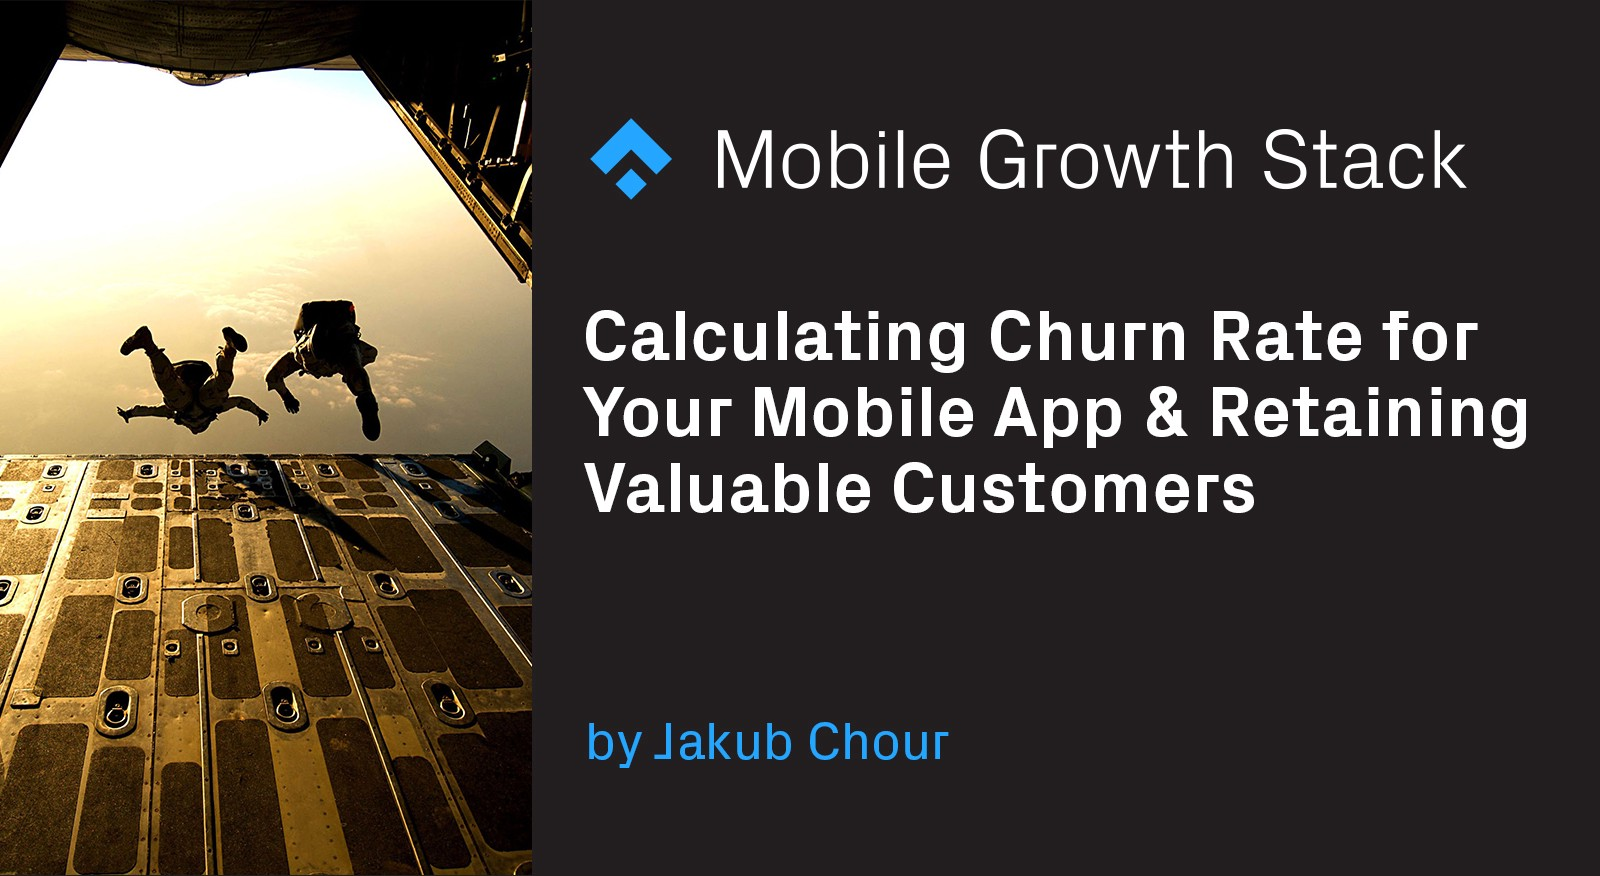 Calculating Churn Rate For Your Mobile App And Retaining Valuable